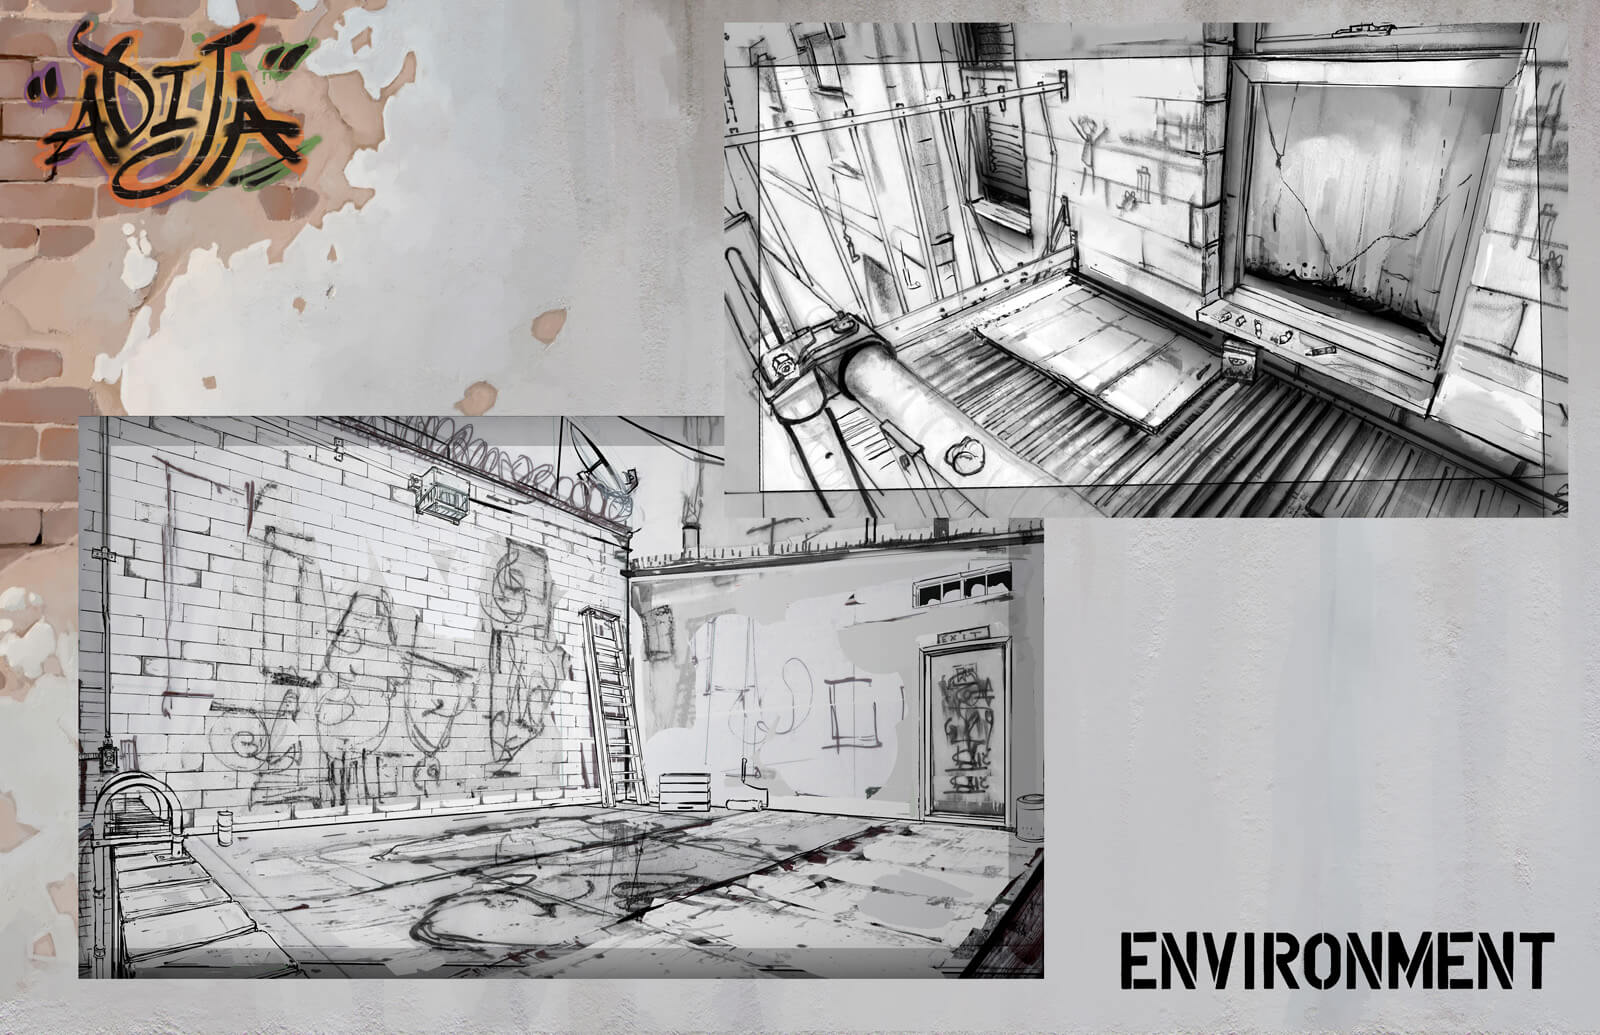 Environmental design sheet showing sketches of the apartment fire escape and roof seen in the film Adija